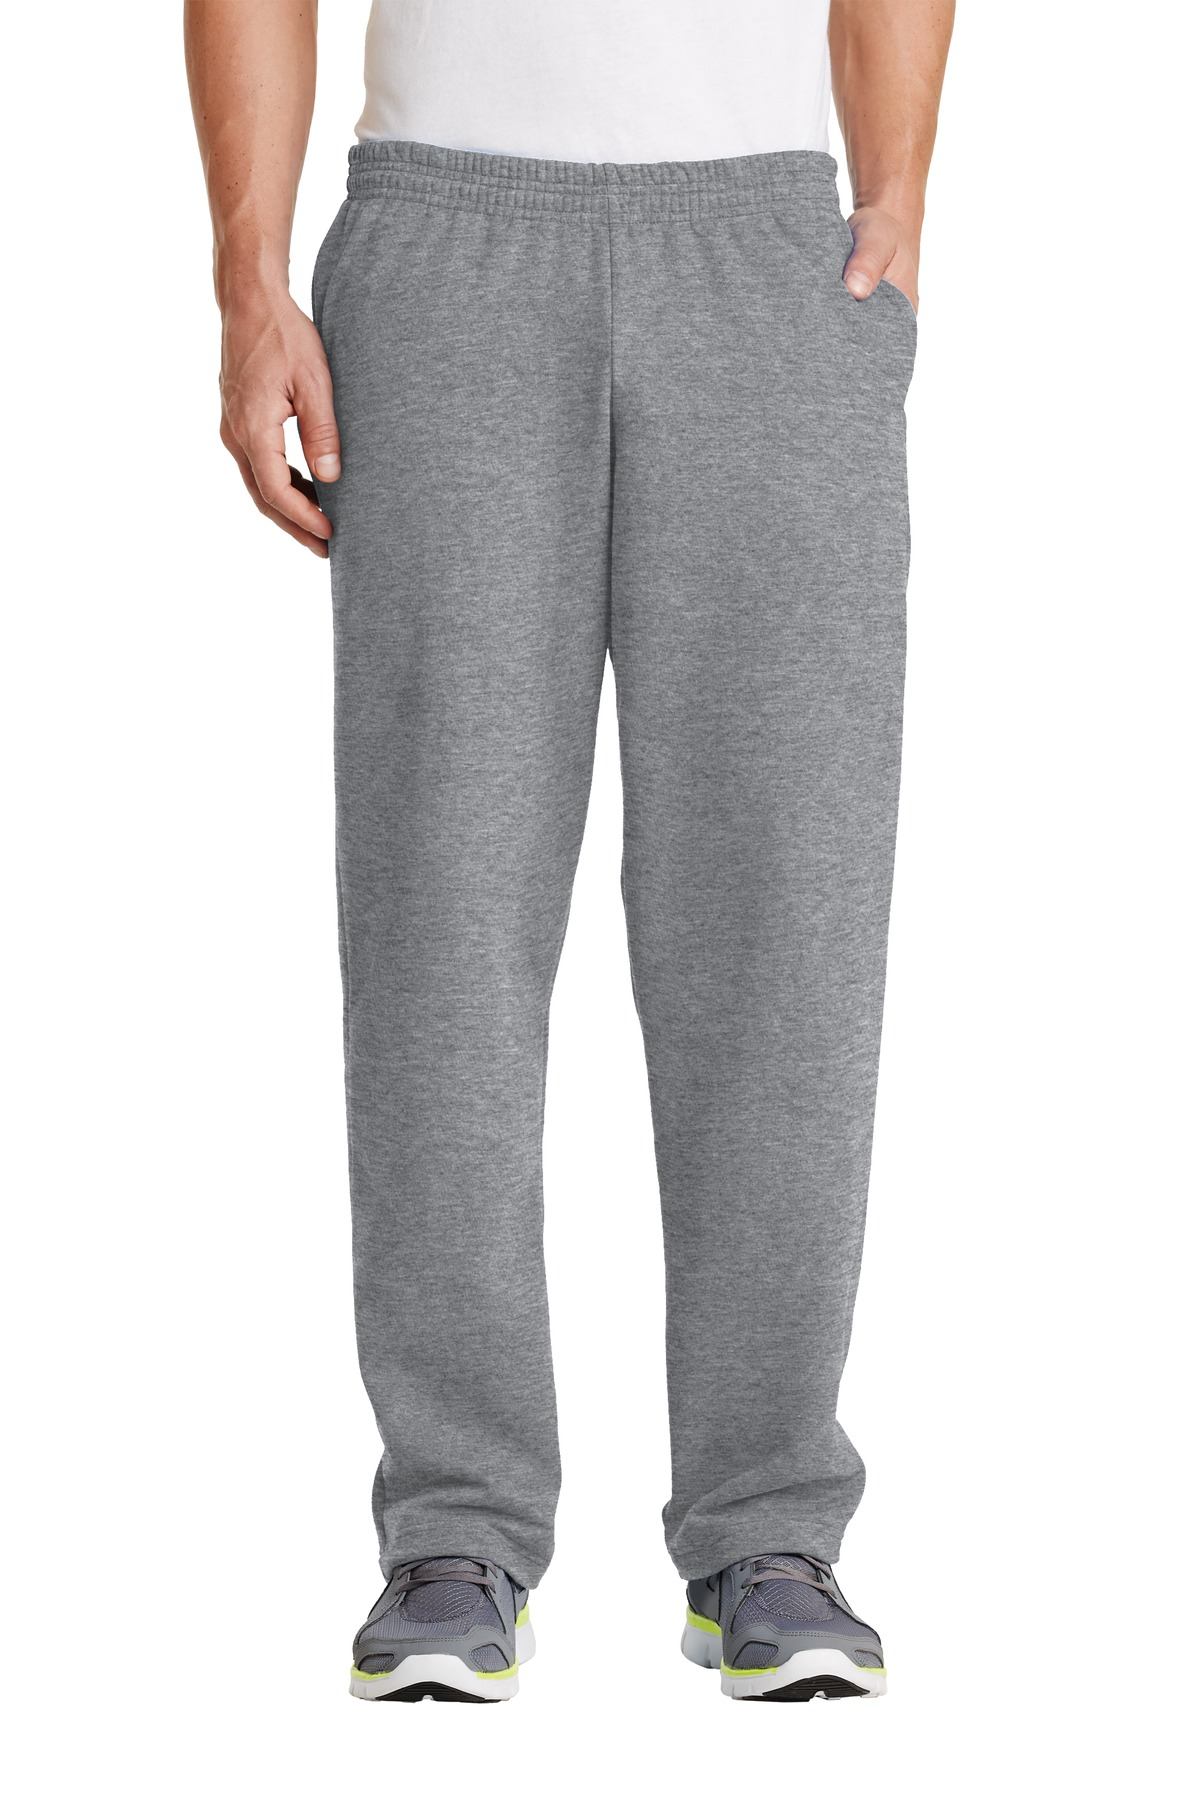 Port & Company ®  - Core Fleece Sweatpant with Pockets. PC78P - Athletic Heather